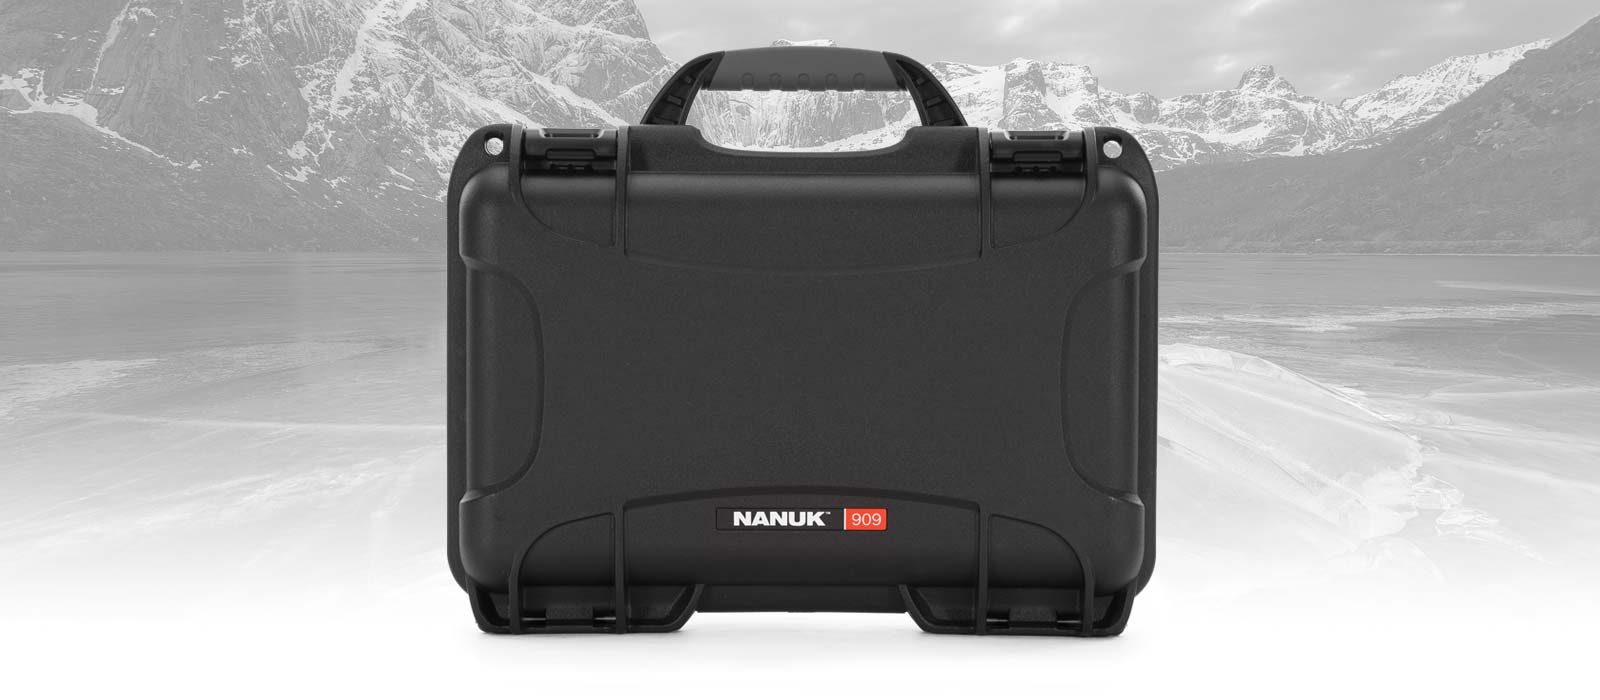 Nanuk 909 Case in Black